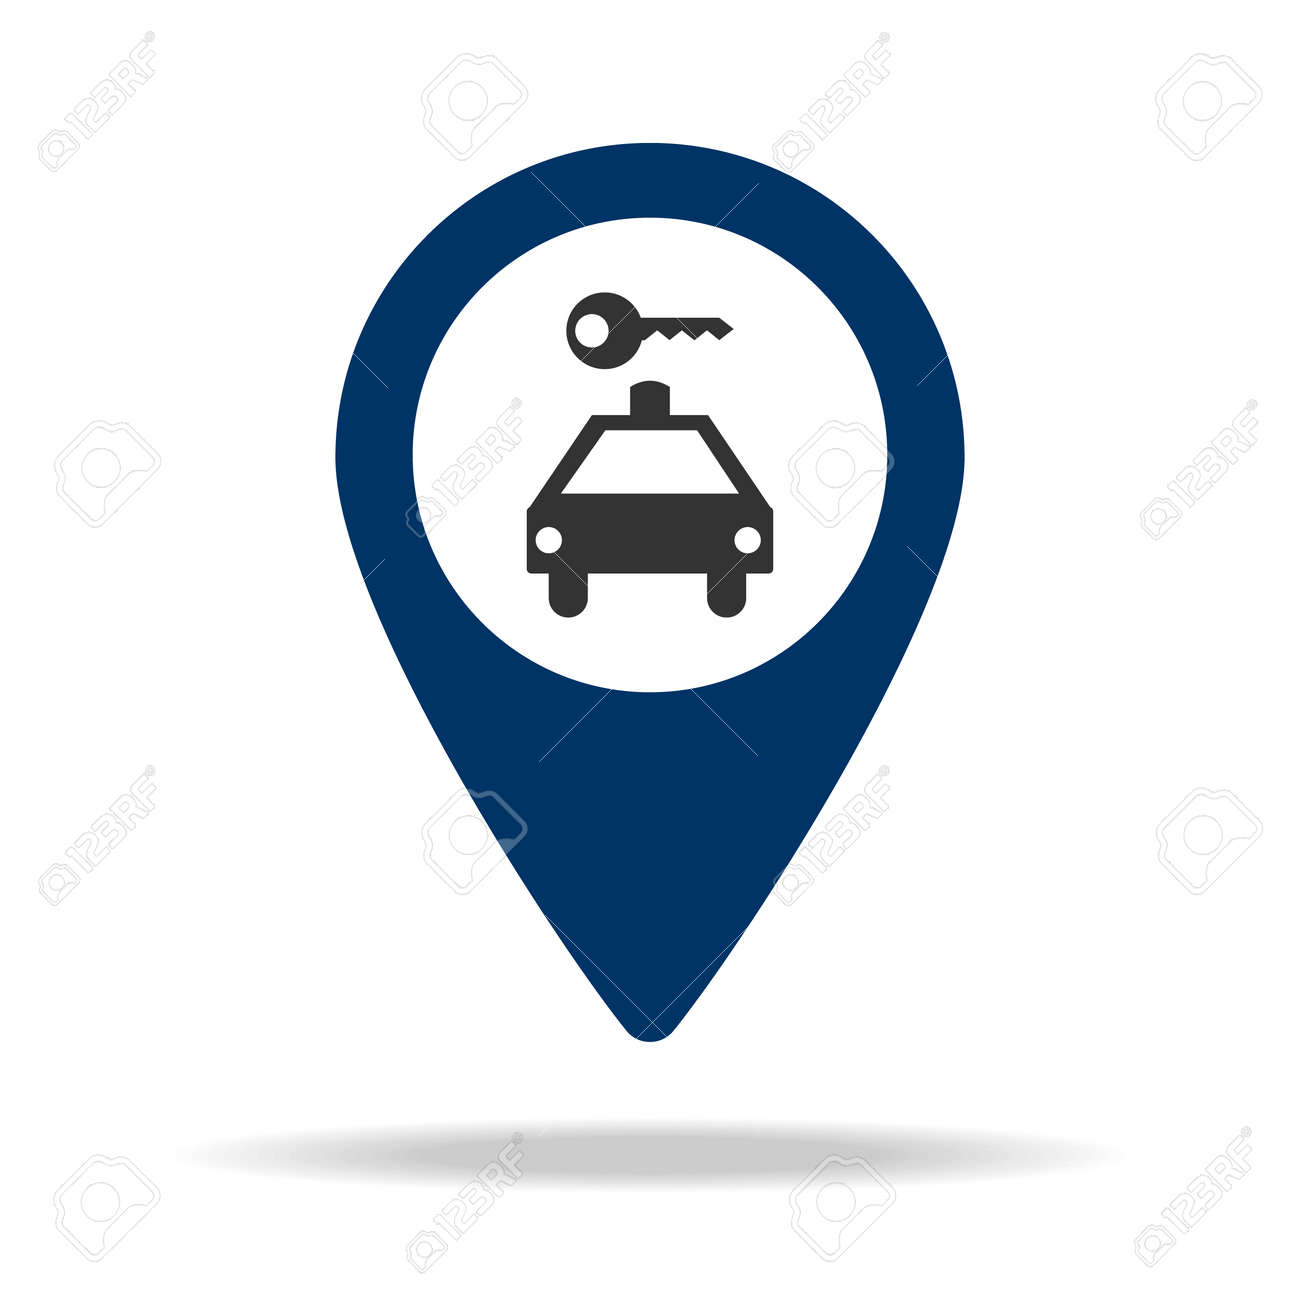 car rental location in blue map pin icon  Element of map point